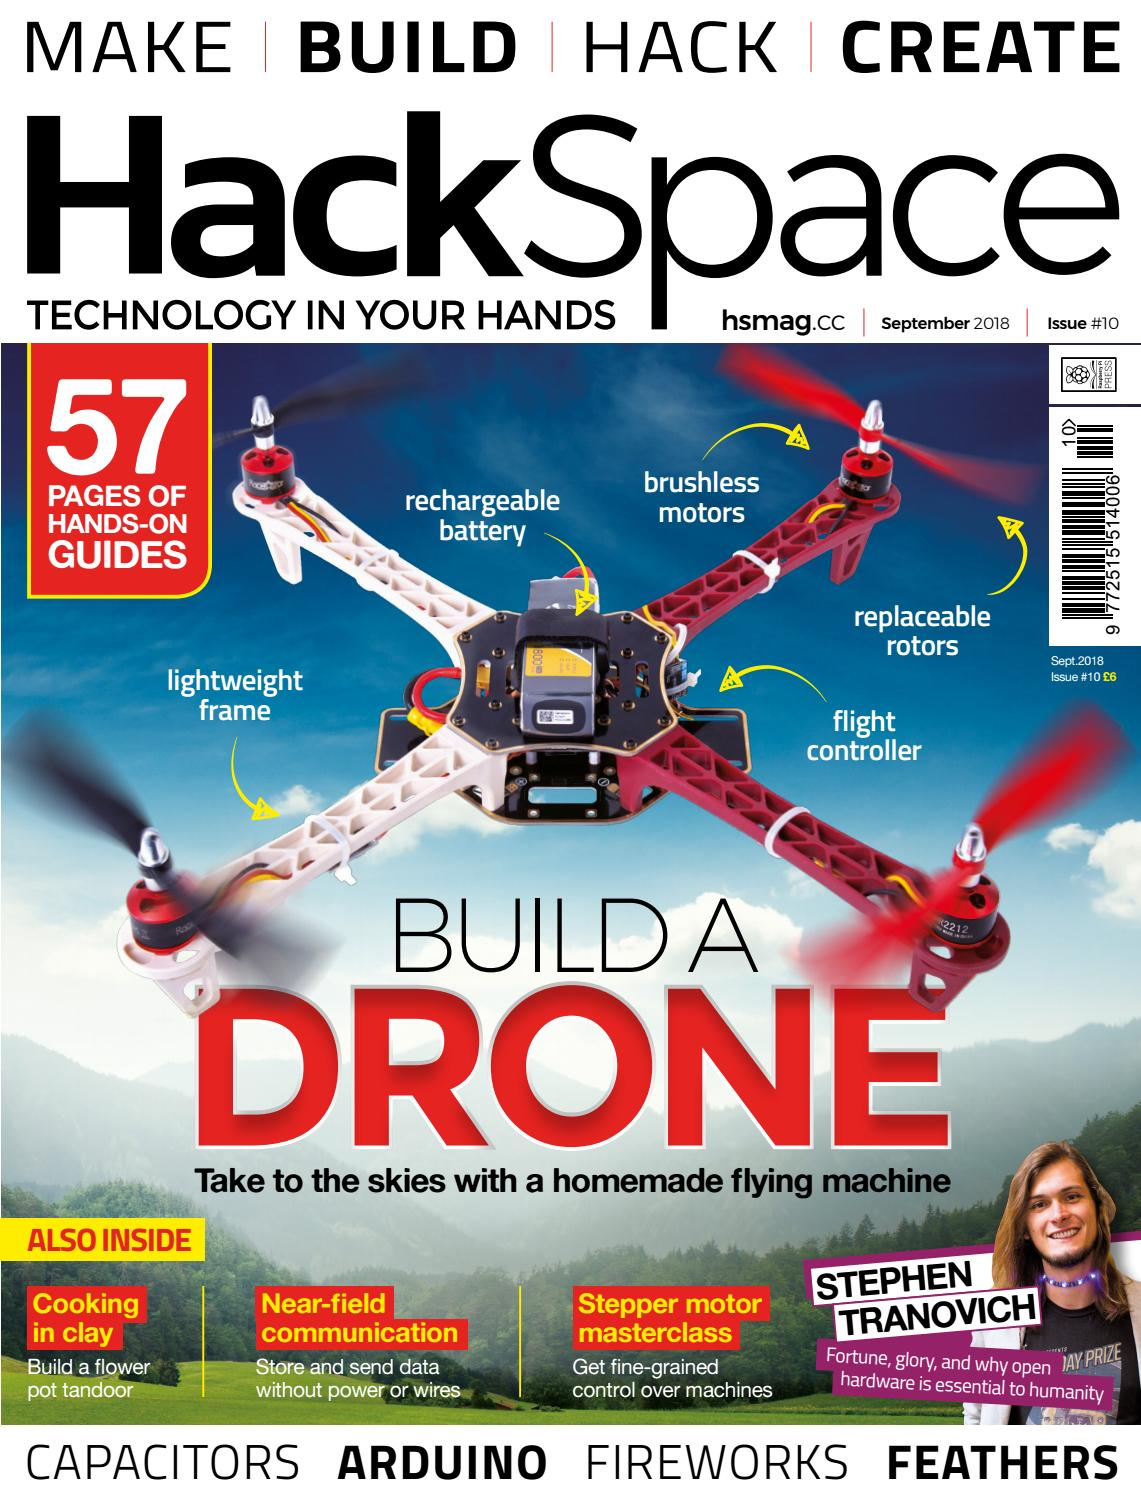 Hackspace Magazine 10 By Angel De Miguel Issuu Atlas Scientific Orp Circuit Sensor For Arduino Ebay